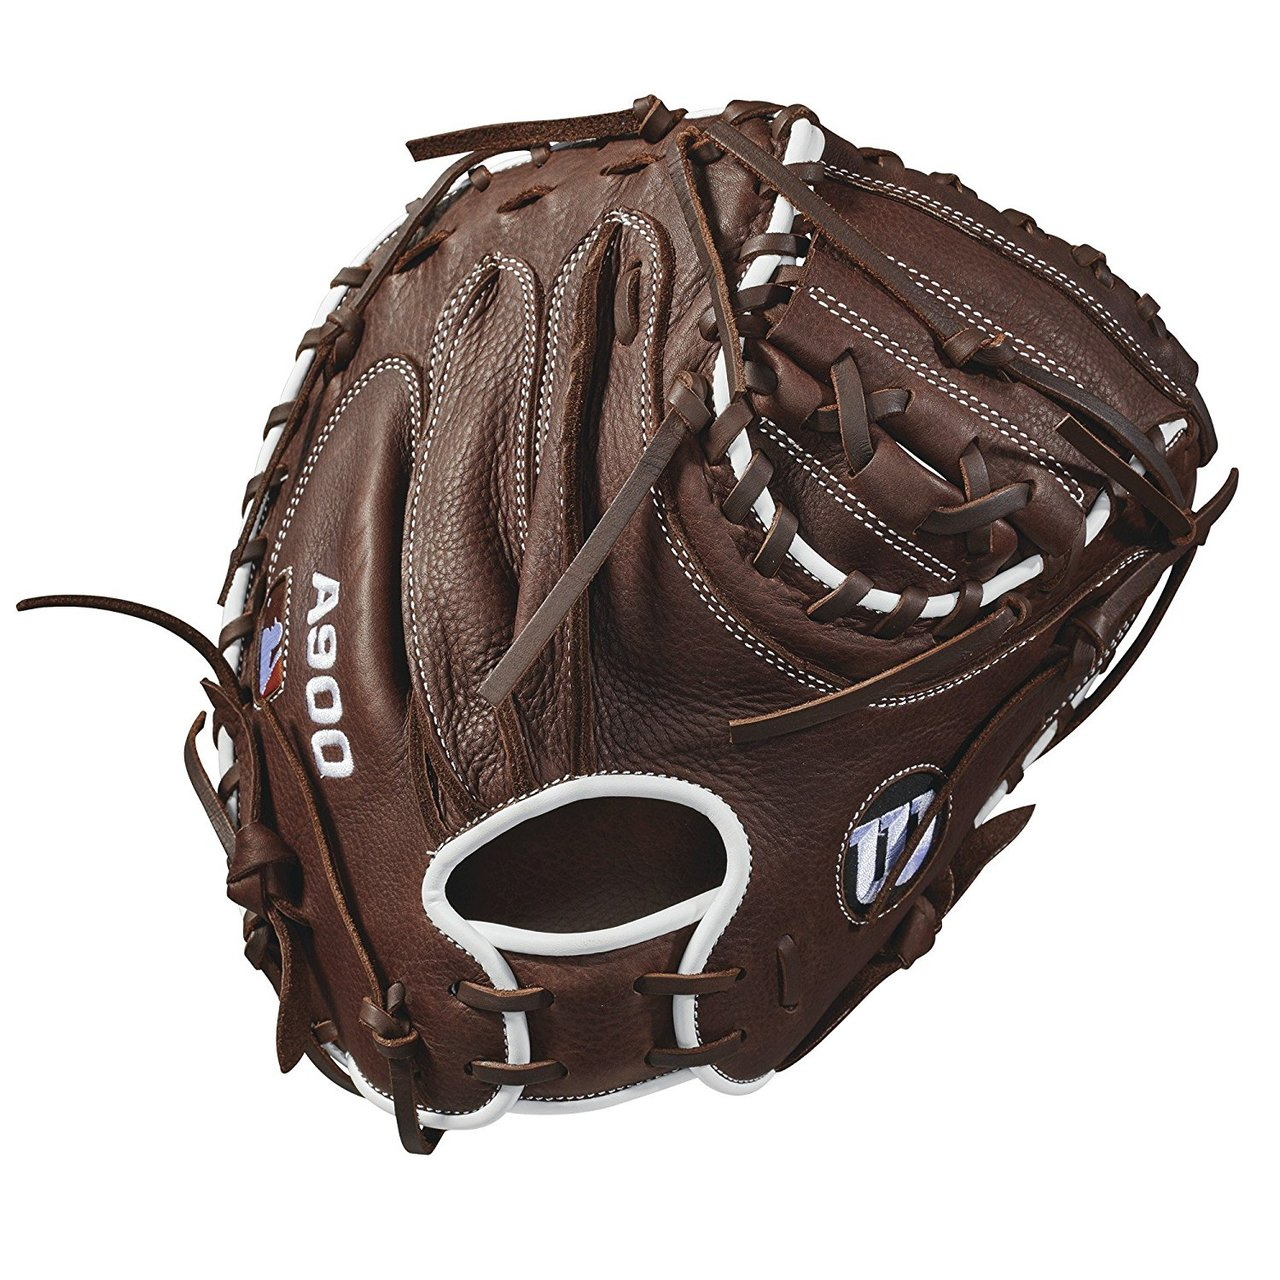 wilson-2018-a900-catchers-mitt-34-inch-right-hand-throw WTA09RB18CM34-RightHandThrow Wilson 887768593926 Wilson youth first base mitts are intended for a younger more